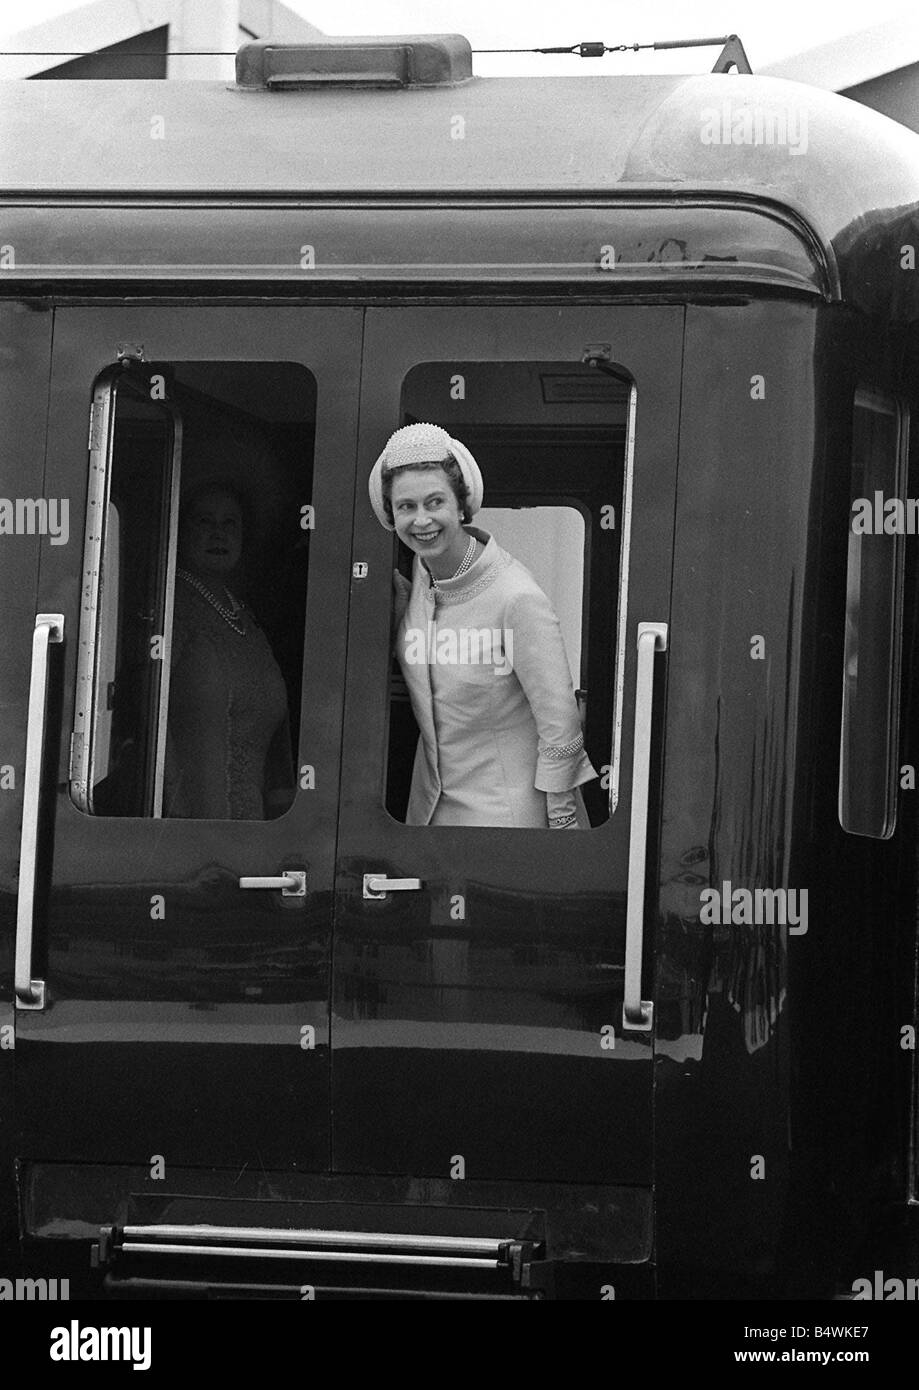 Prince Charles Investiture as Prince of Wales 1969 Queen Elizabeth smiles as she arrives by train at Caernarvon - Stock Image